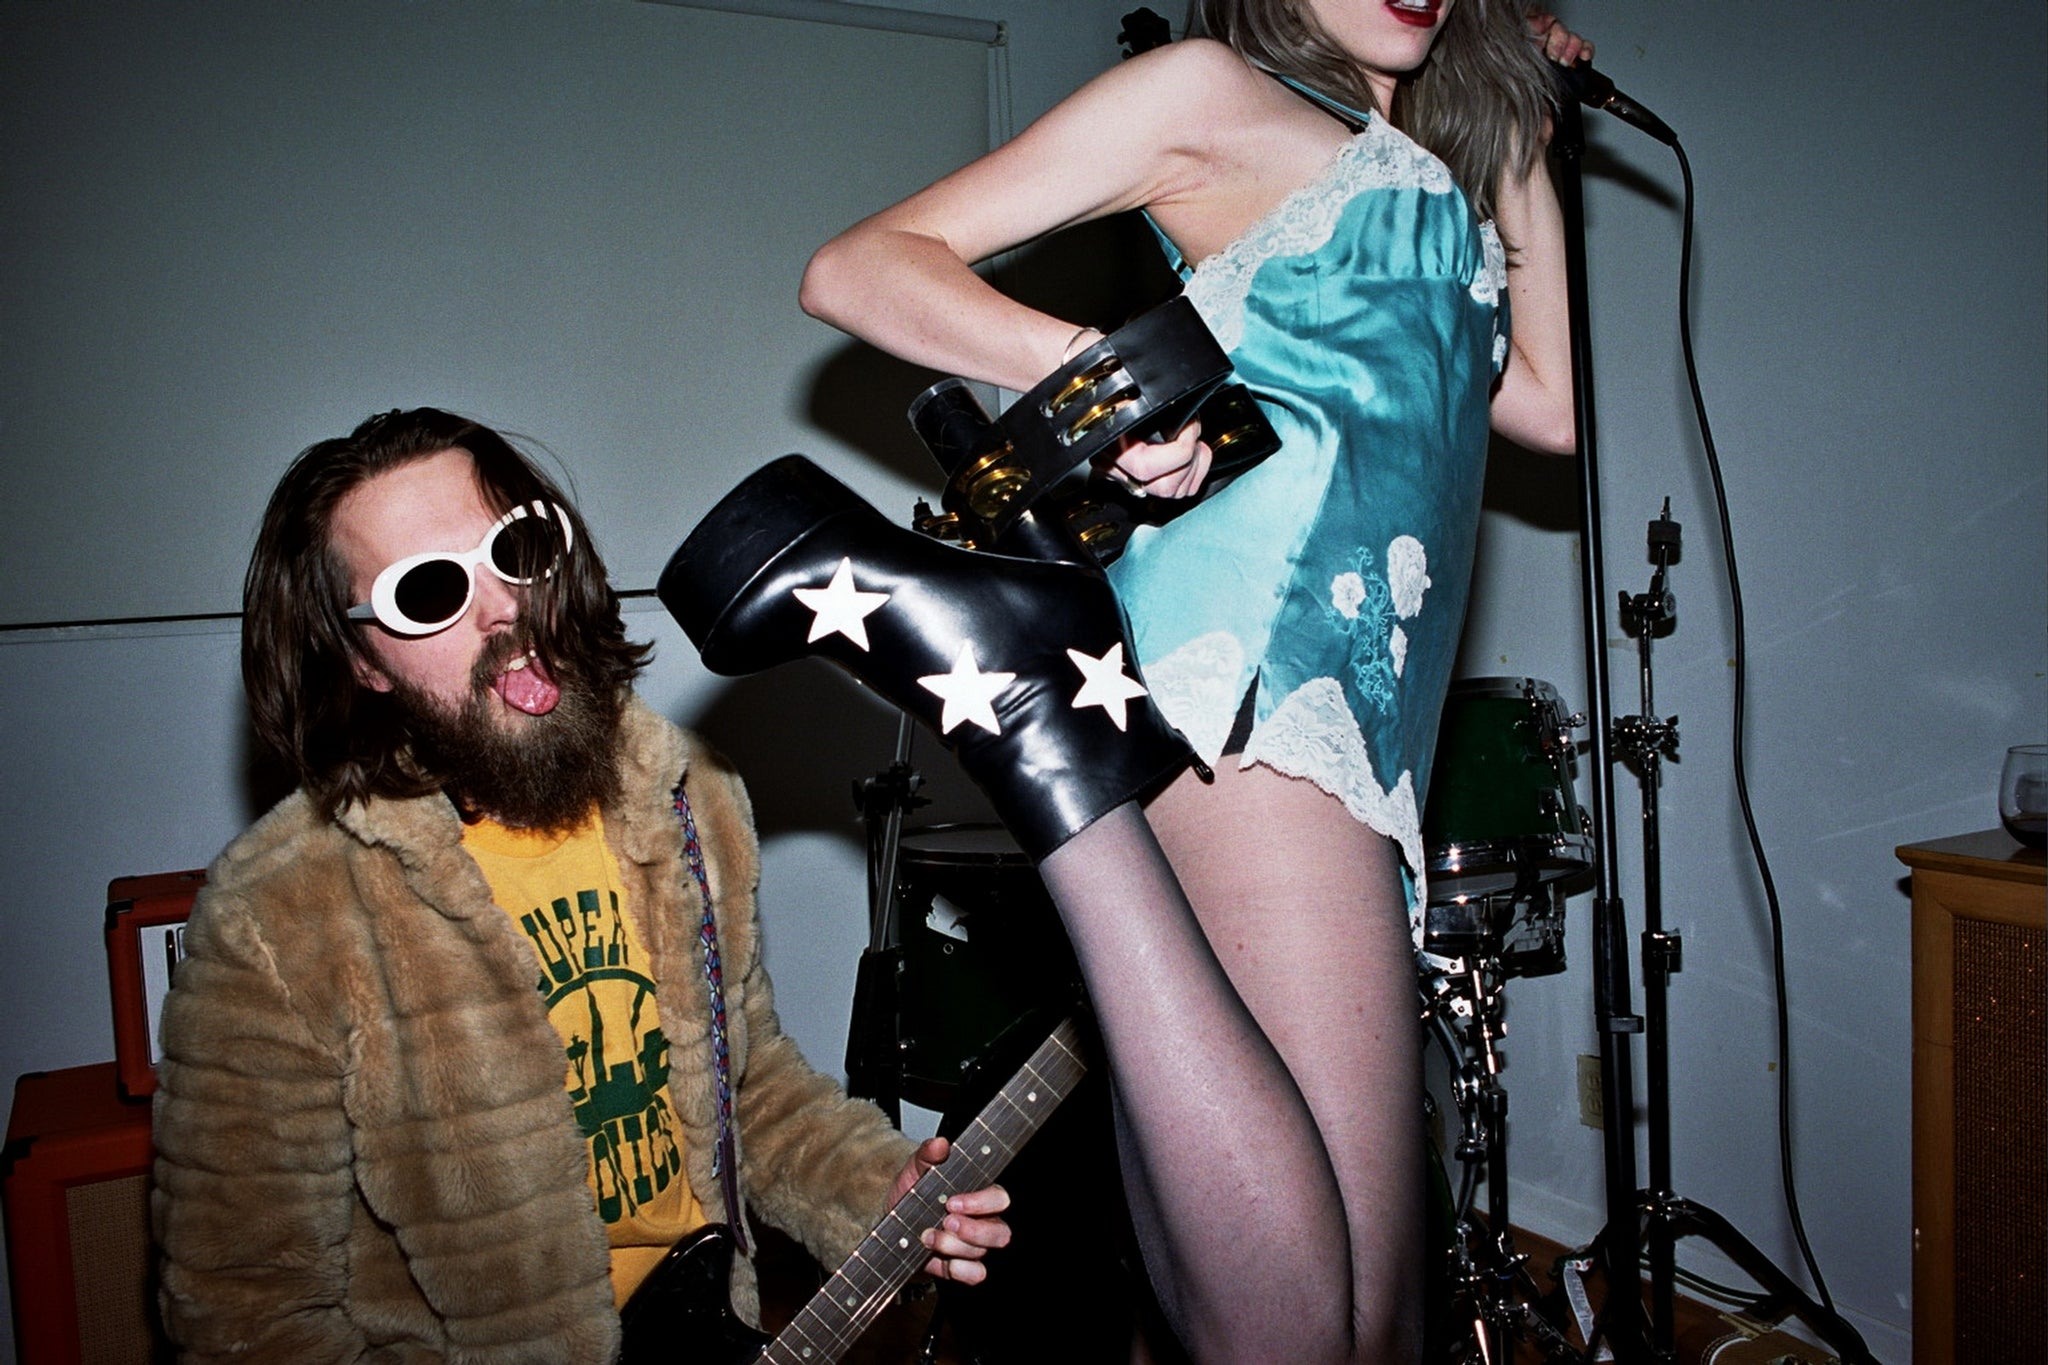 Nirvana - AnotherFilthyMagazine Gallery with The Acid Sisters - Photo 8